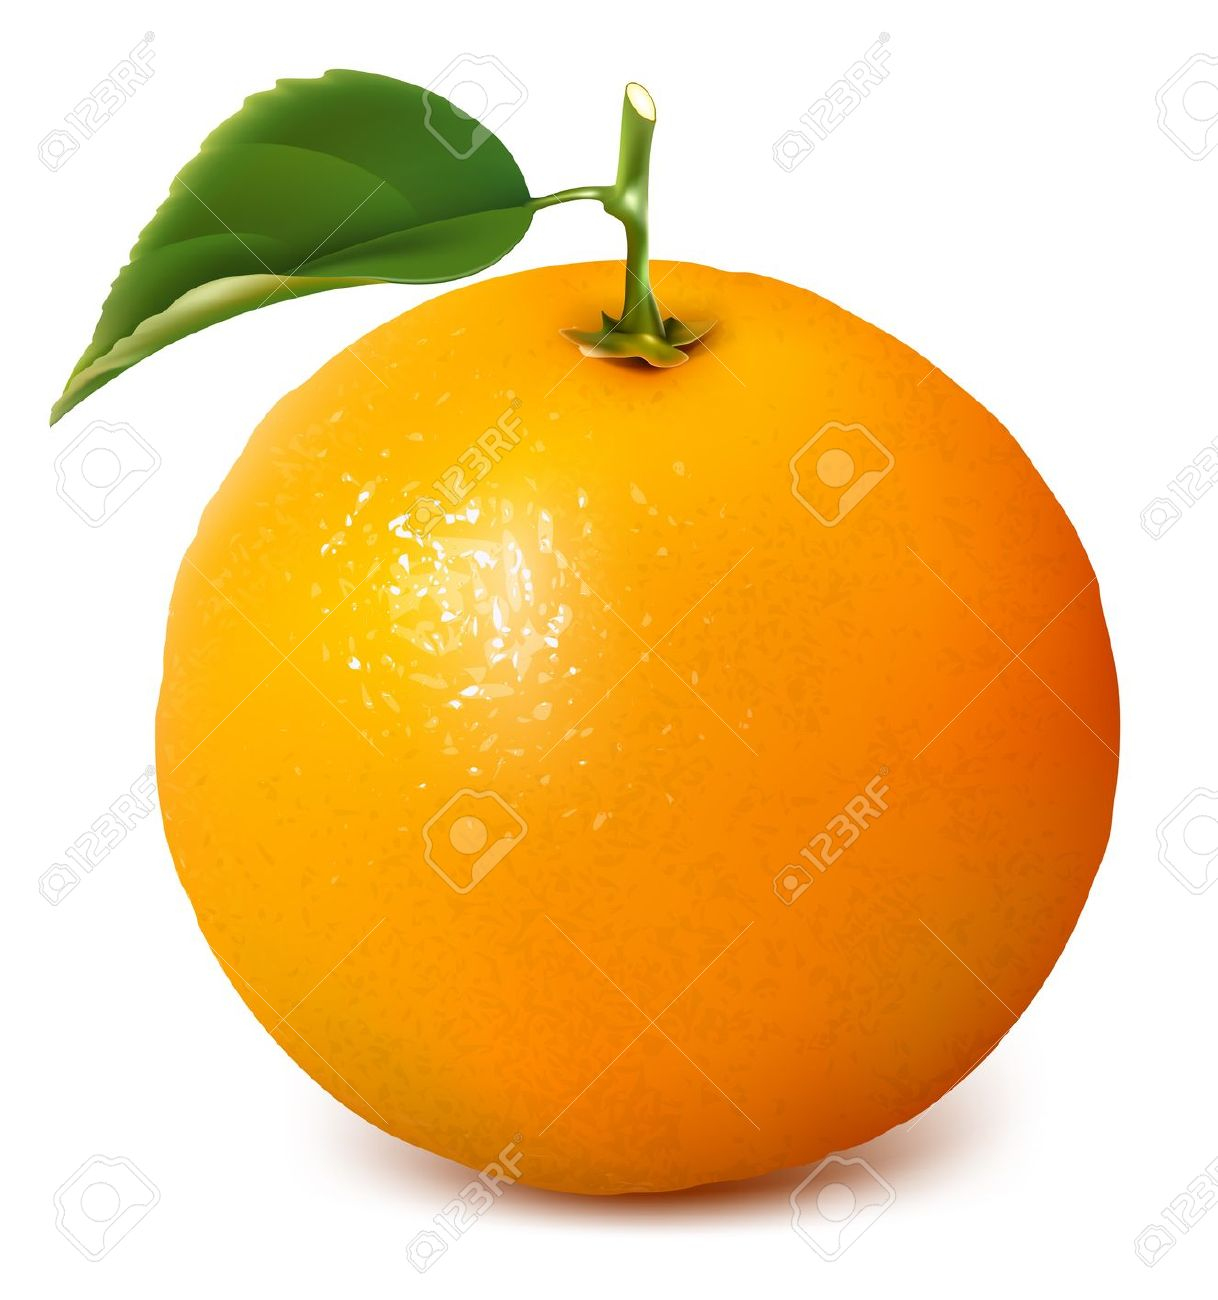 Orange Fruit Cliparts Stock Vector And Royalty Free Orange Fruit